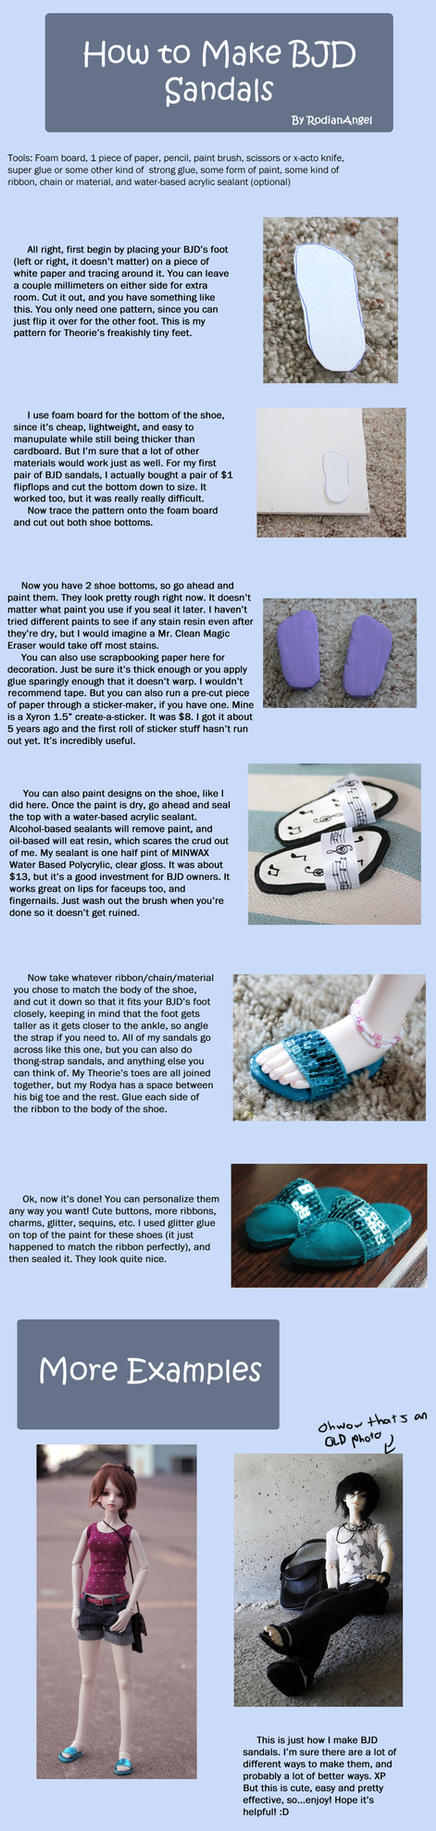 How to Make BJD Sandals by RodianAngel